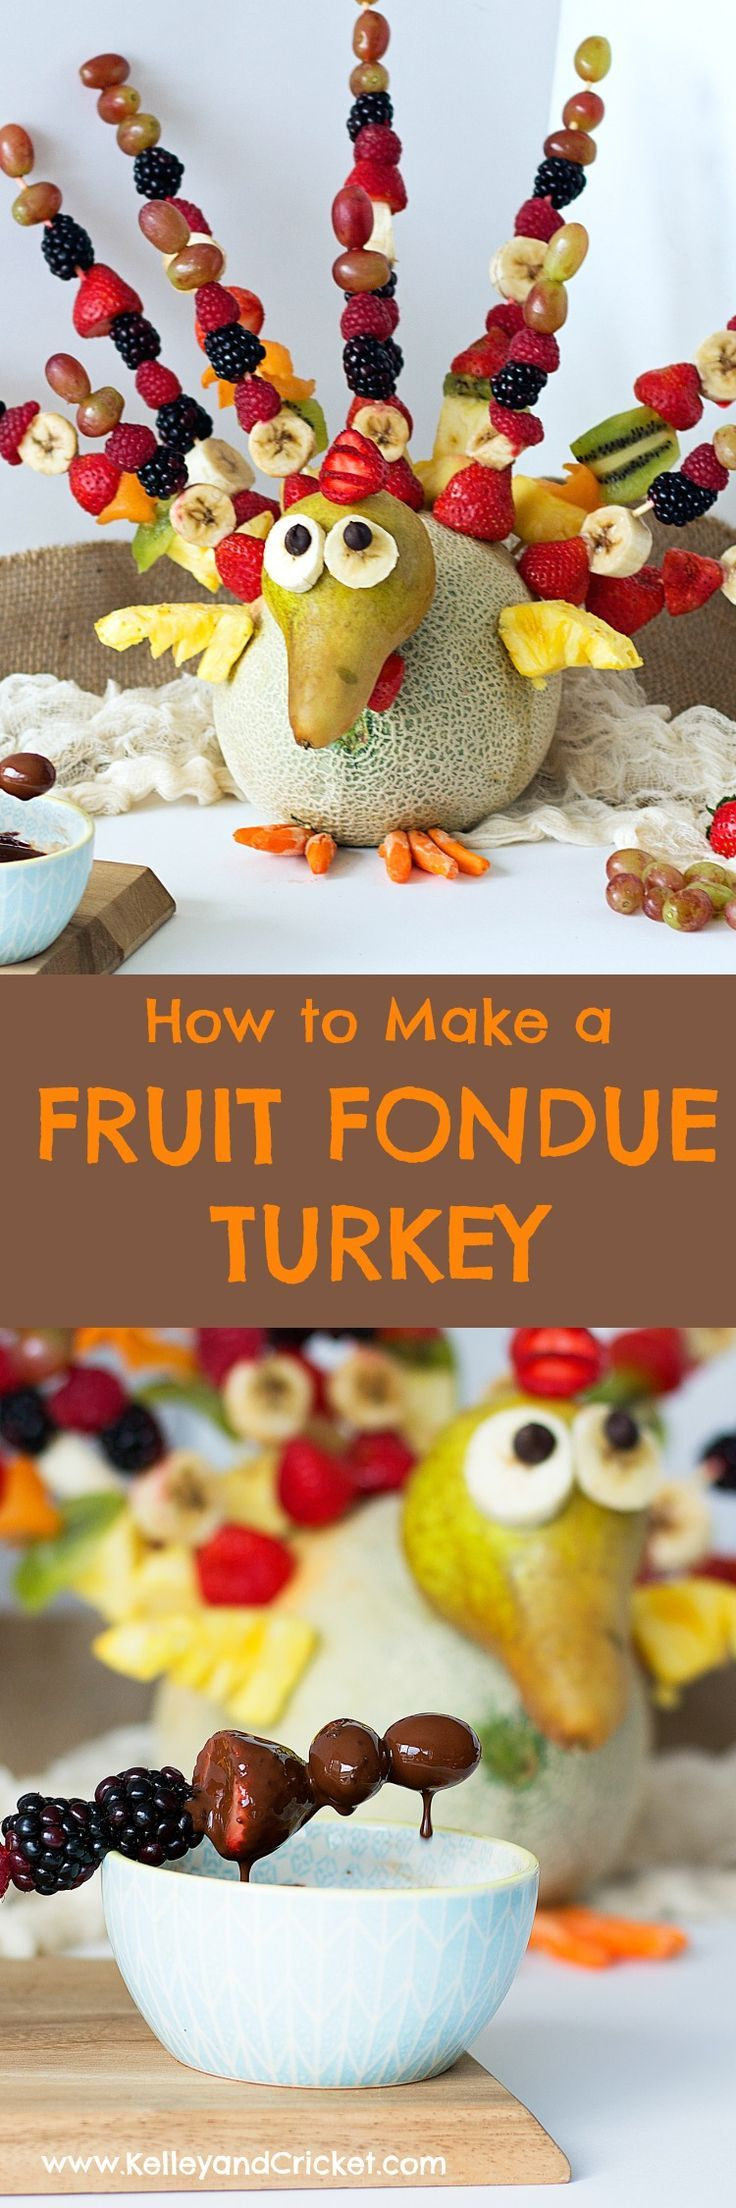 FRUIT TURKEY with CHOCOLATE FONDUE {VIDEO!}{Grain-Free,Paleo}